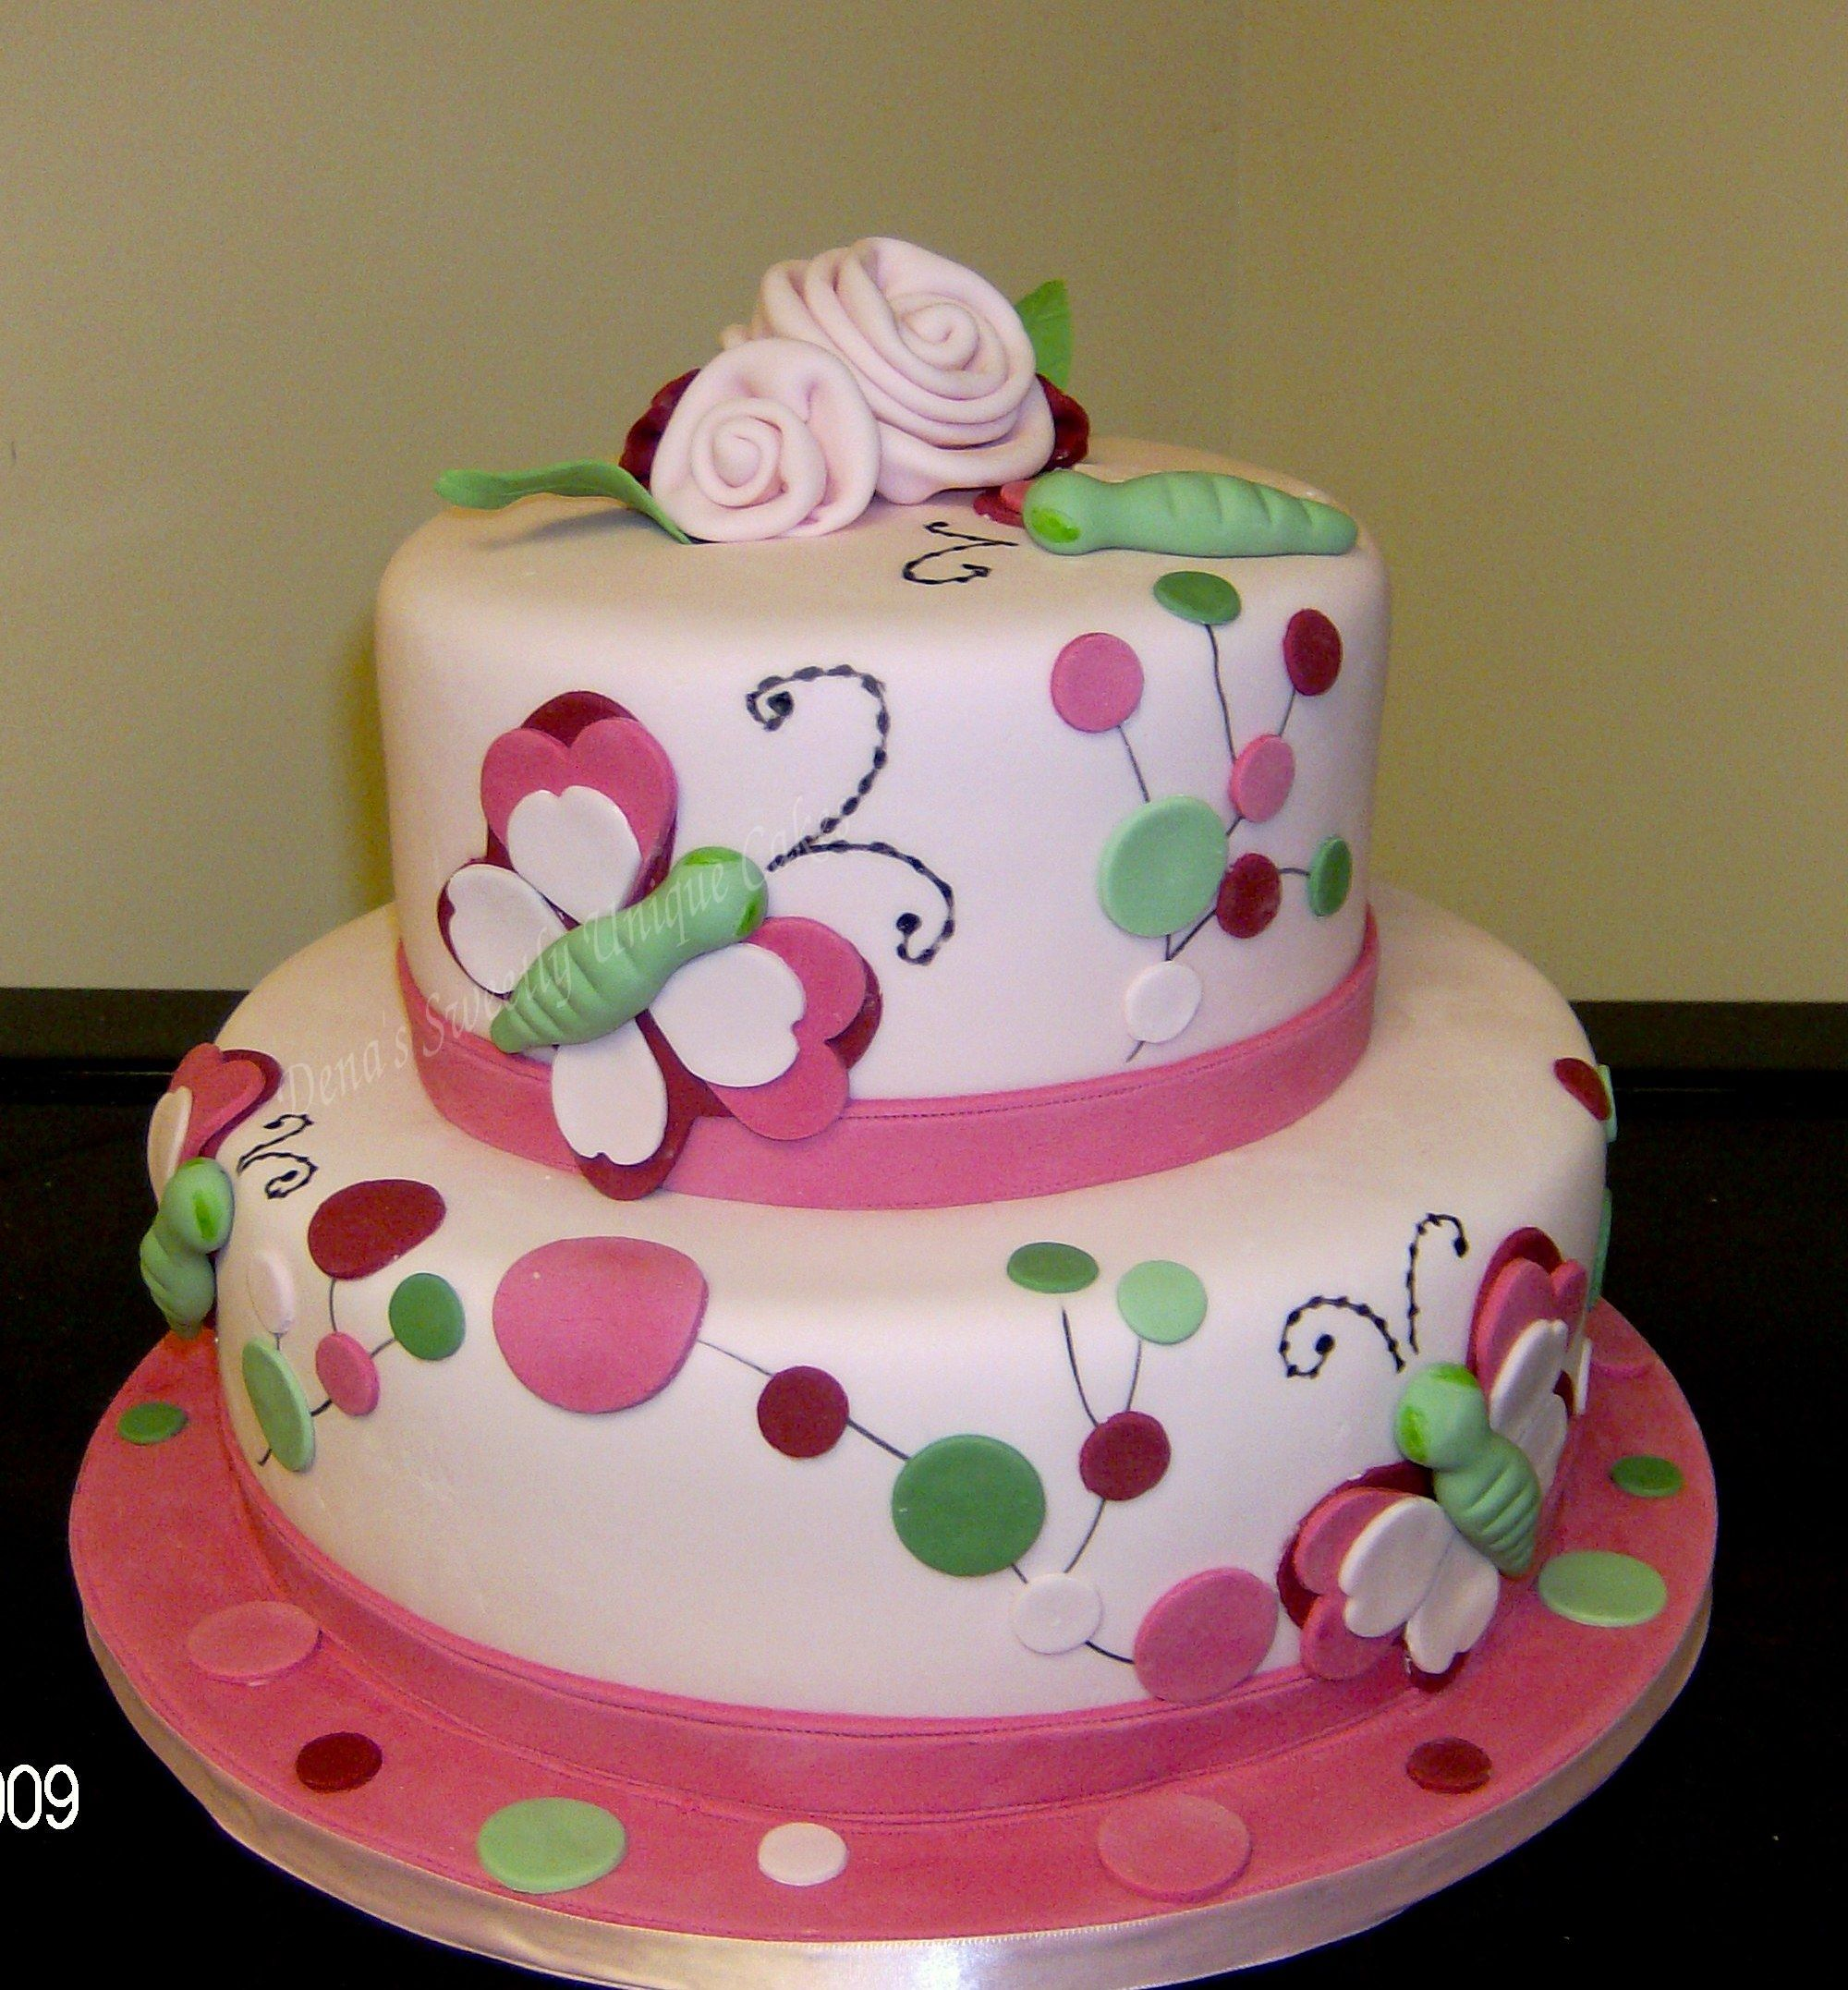 Find This Pin And More On Baby Shower Cake Ideas By Mommynoelle2013.